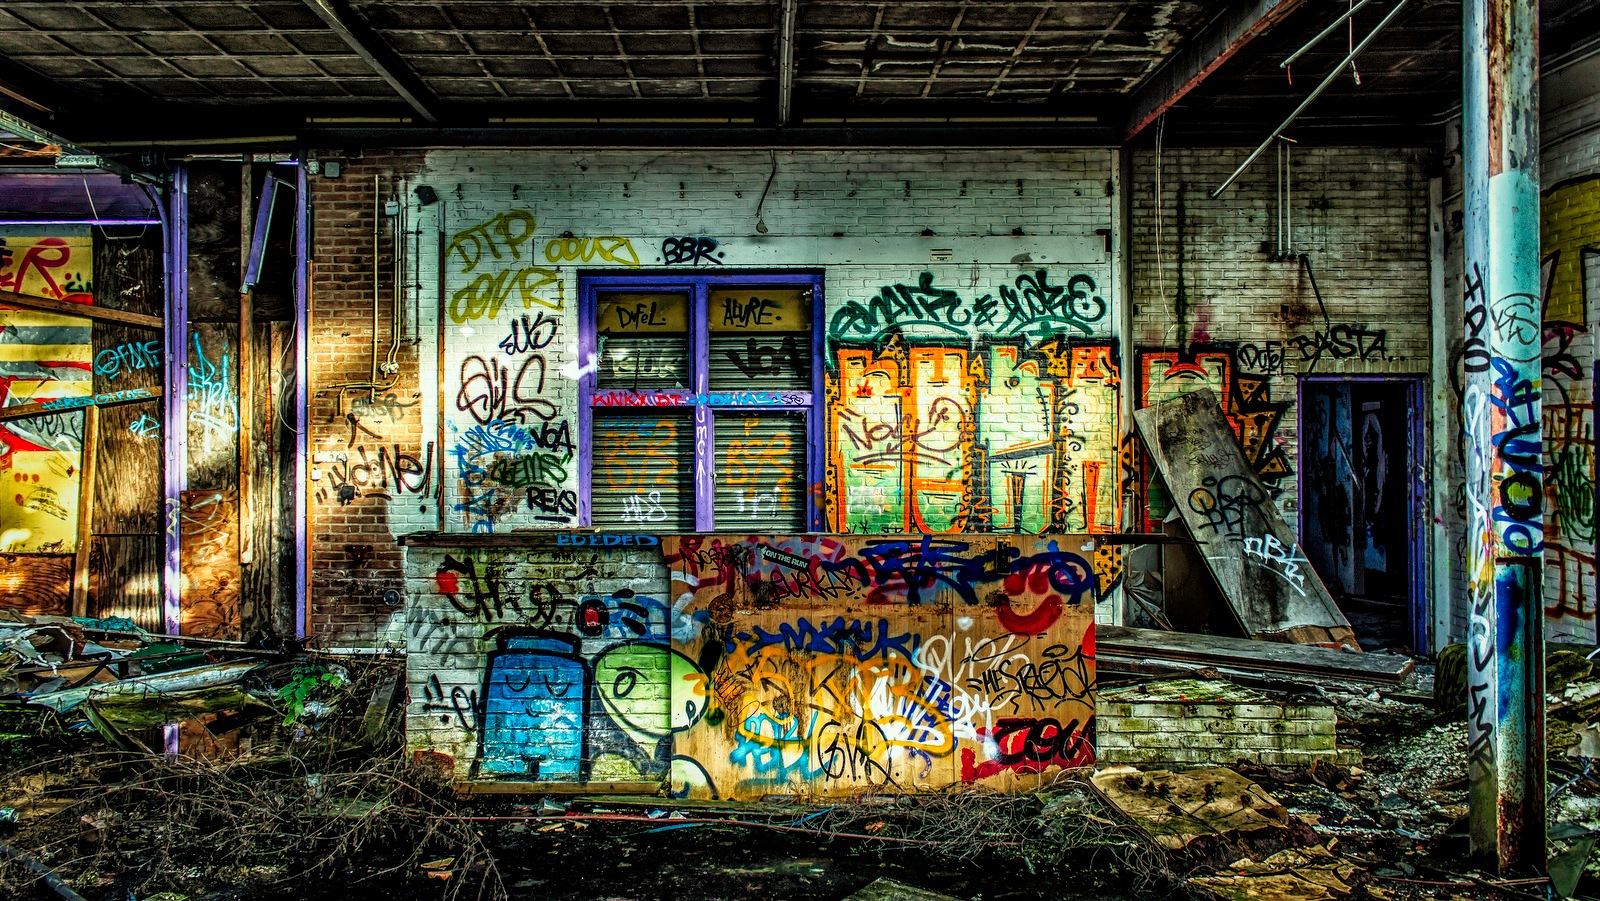 Tag Bombing by Pieter de Knijff Photography